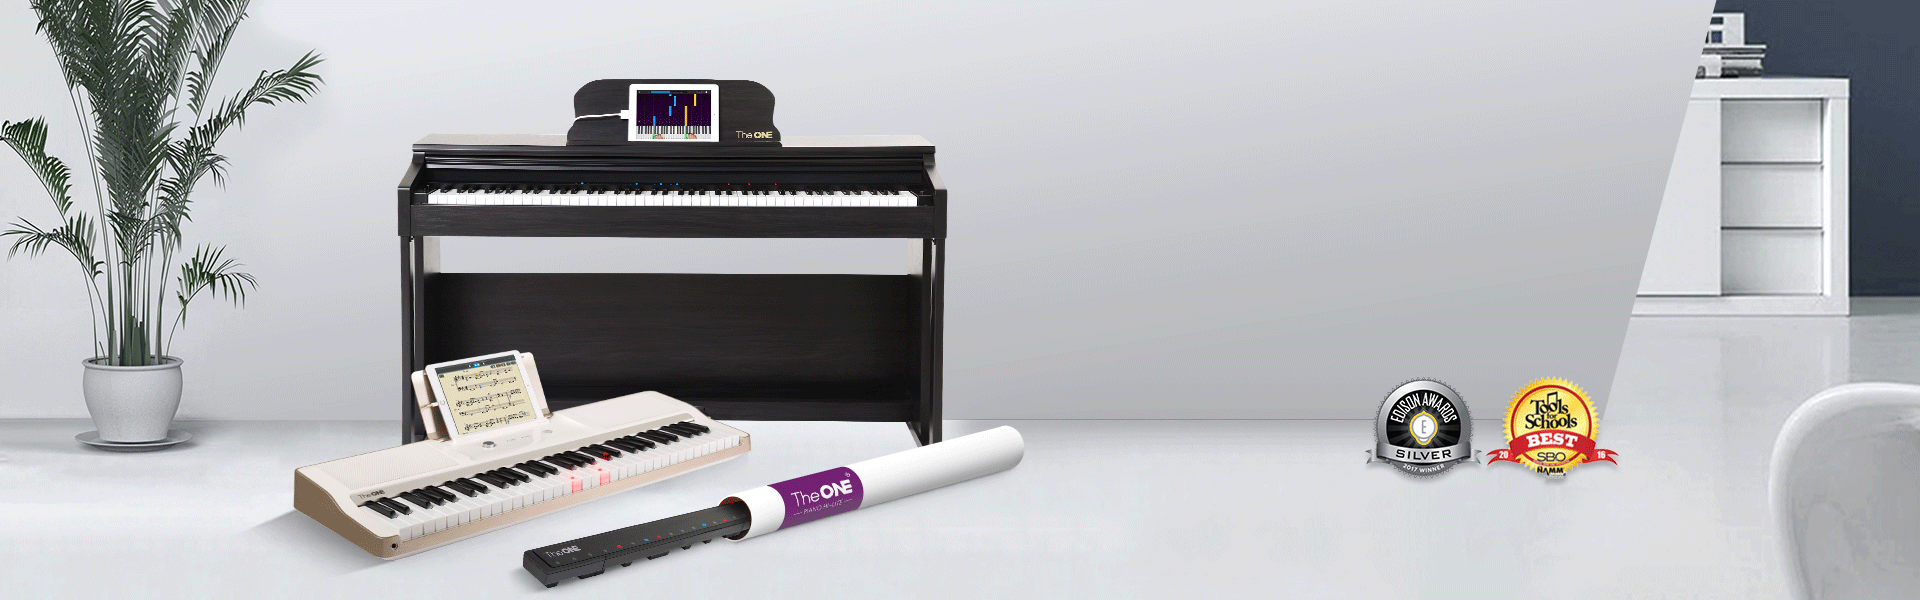 the_one_smart_piano_banner_03